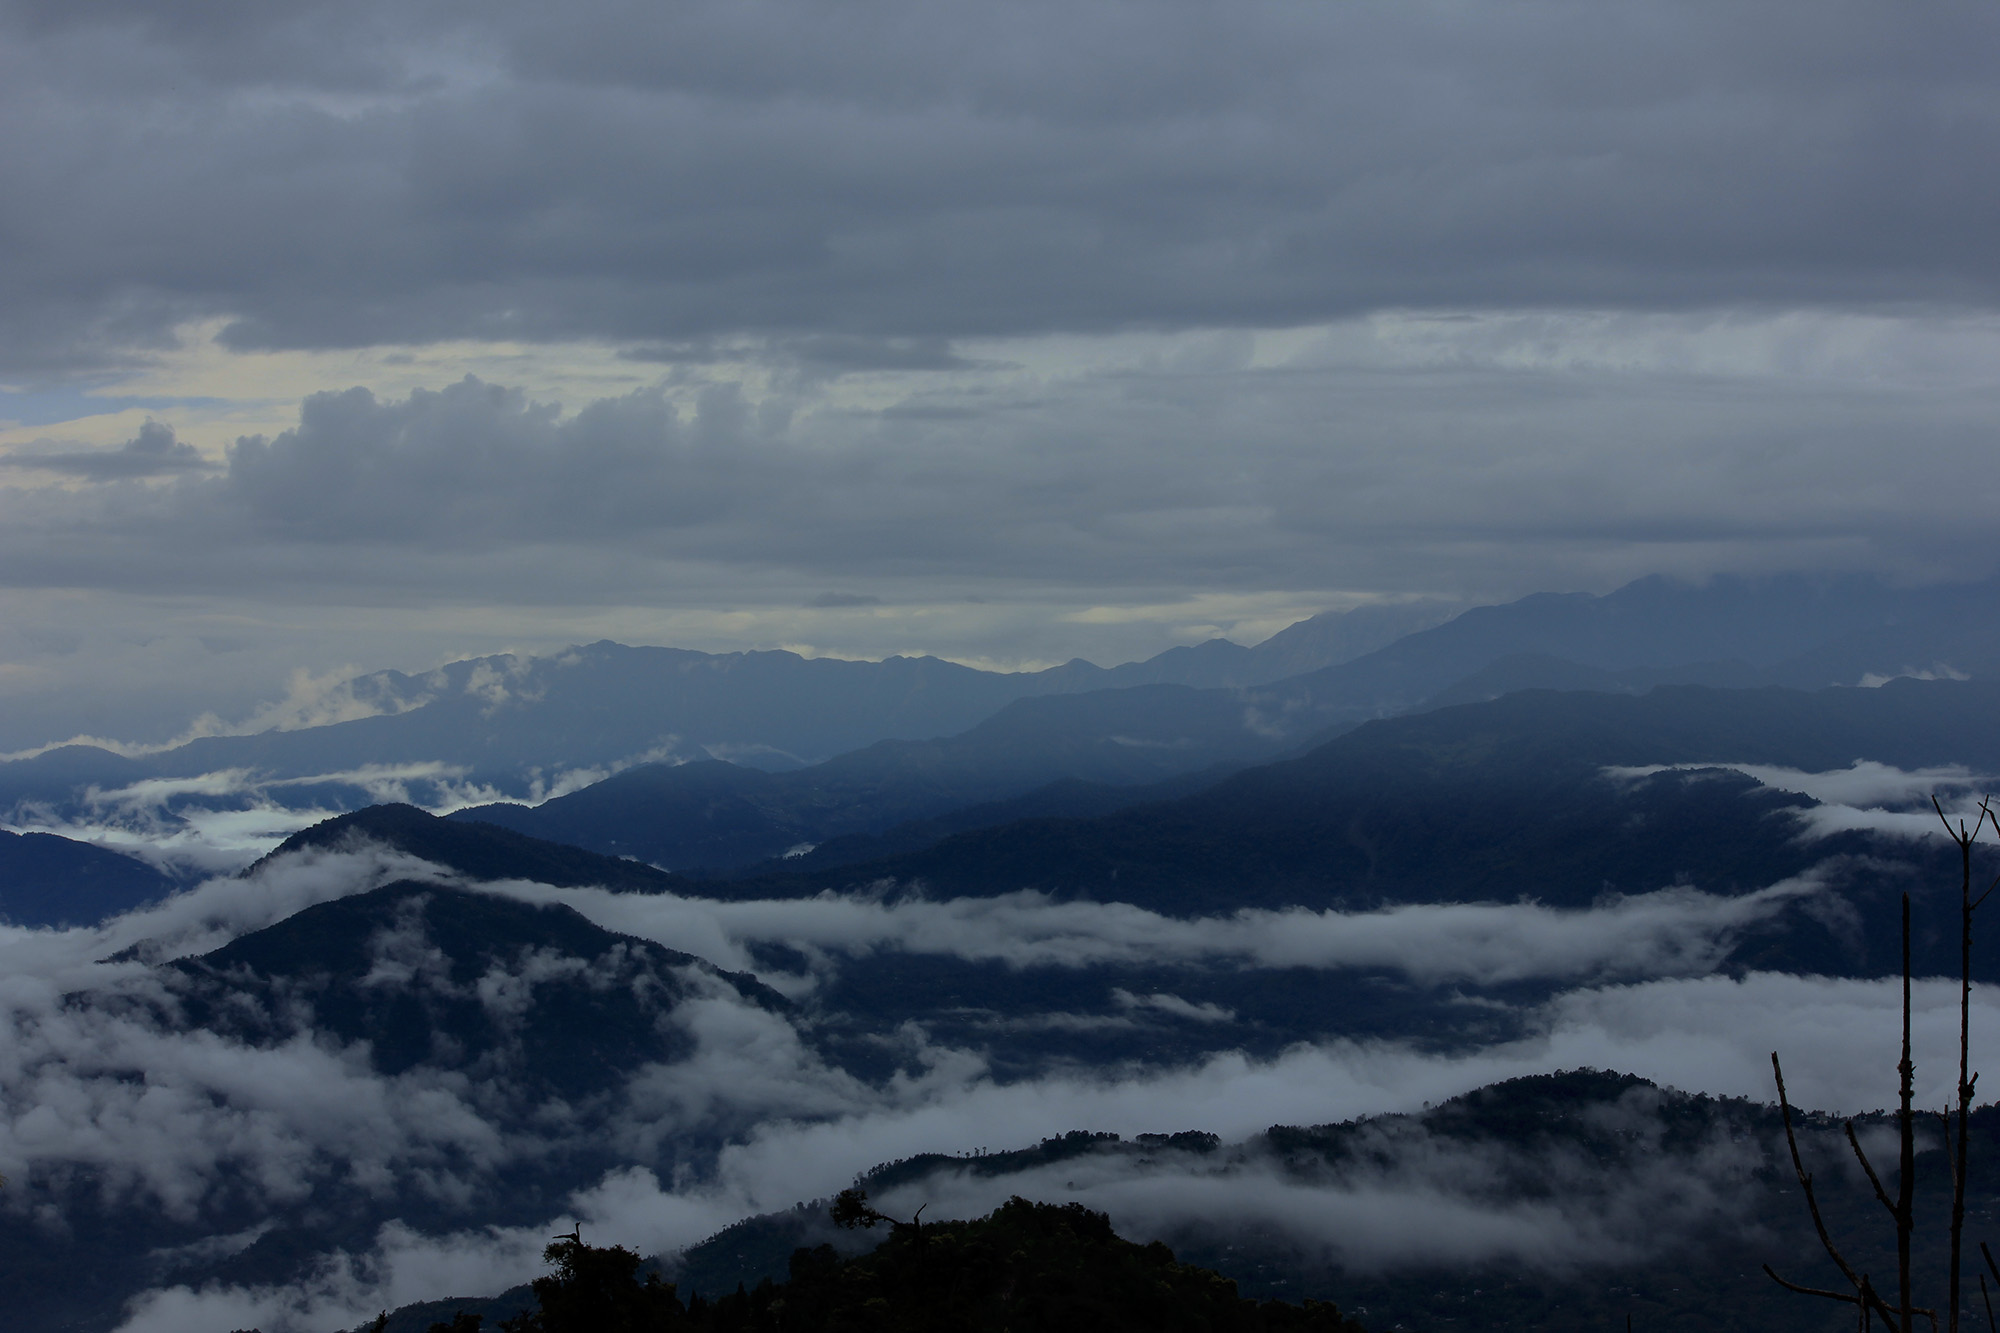 this photo taken at rishyap after the rain was stopped.clouds are playing with their friend hills.